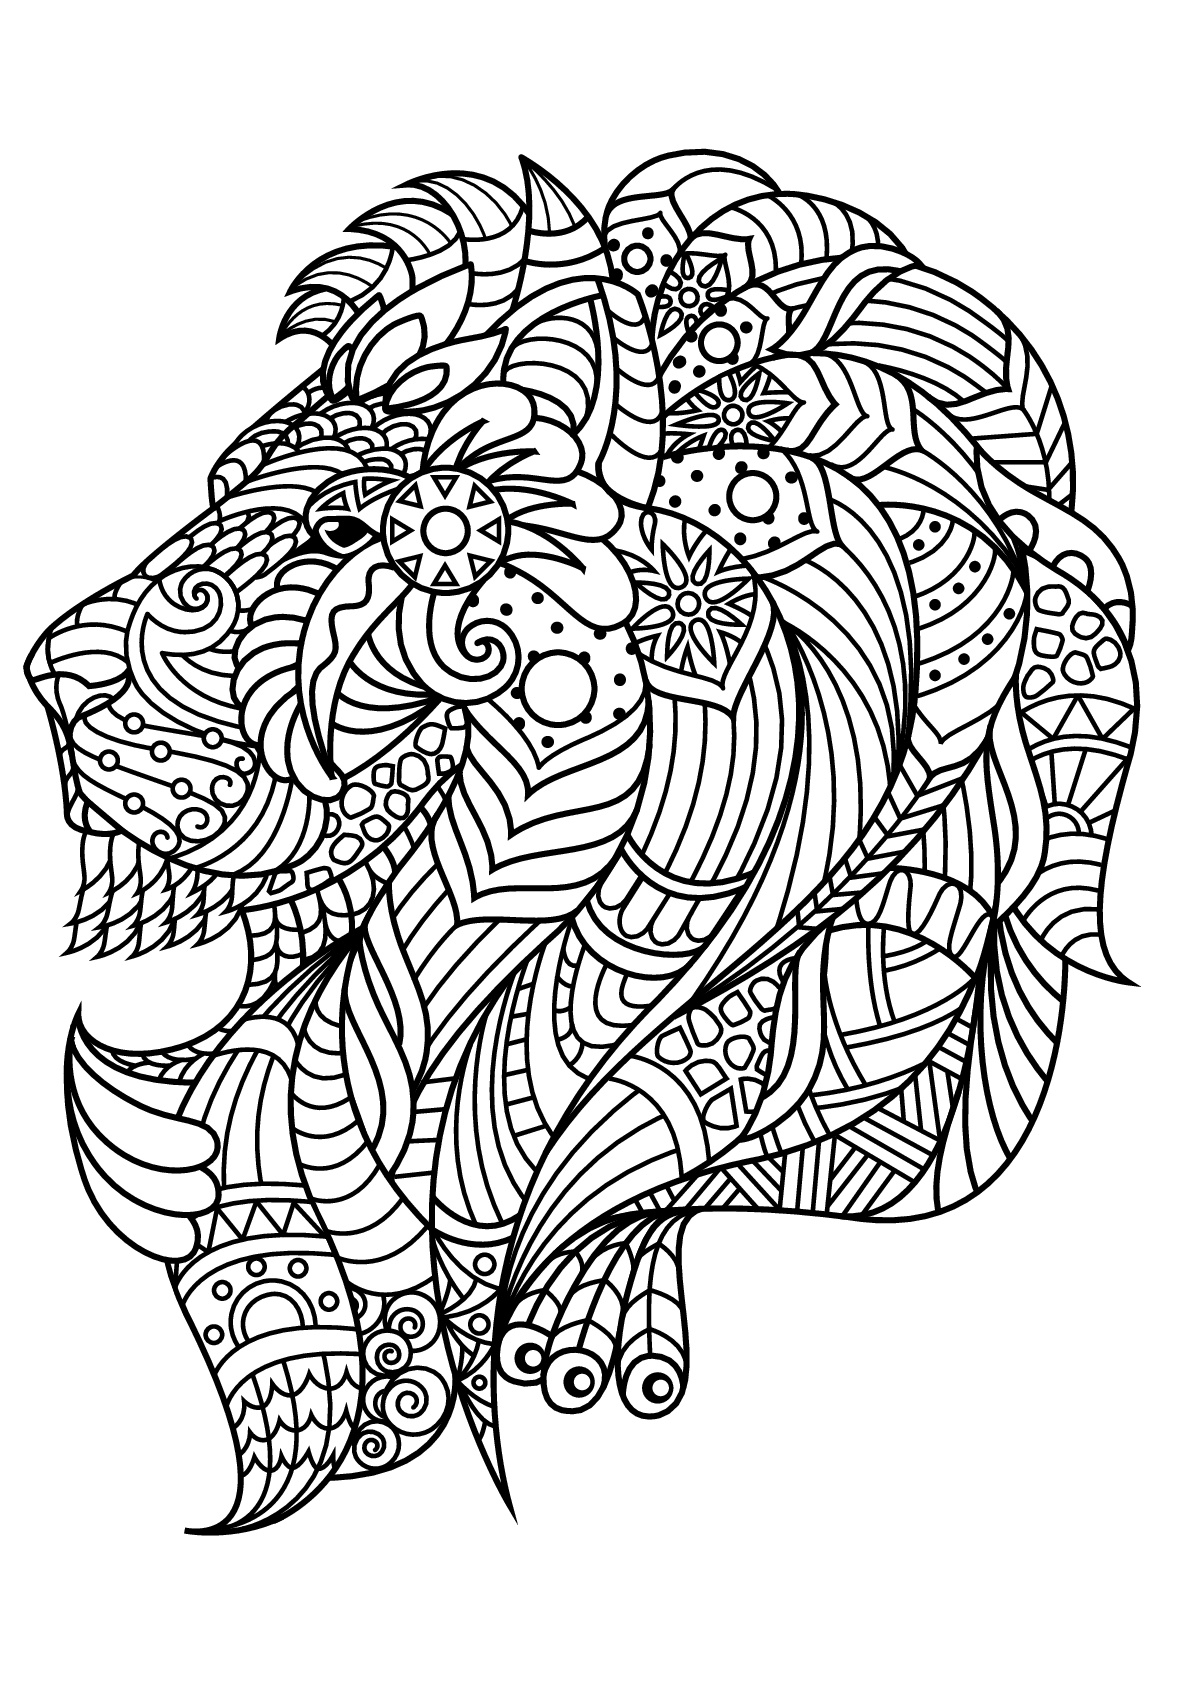 picture of a lion to color lion coloring pages to download and print for free of lion picture color a to